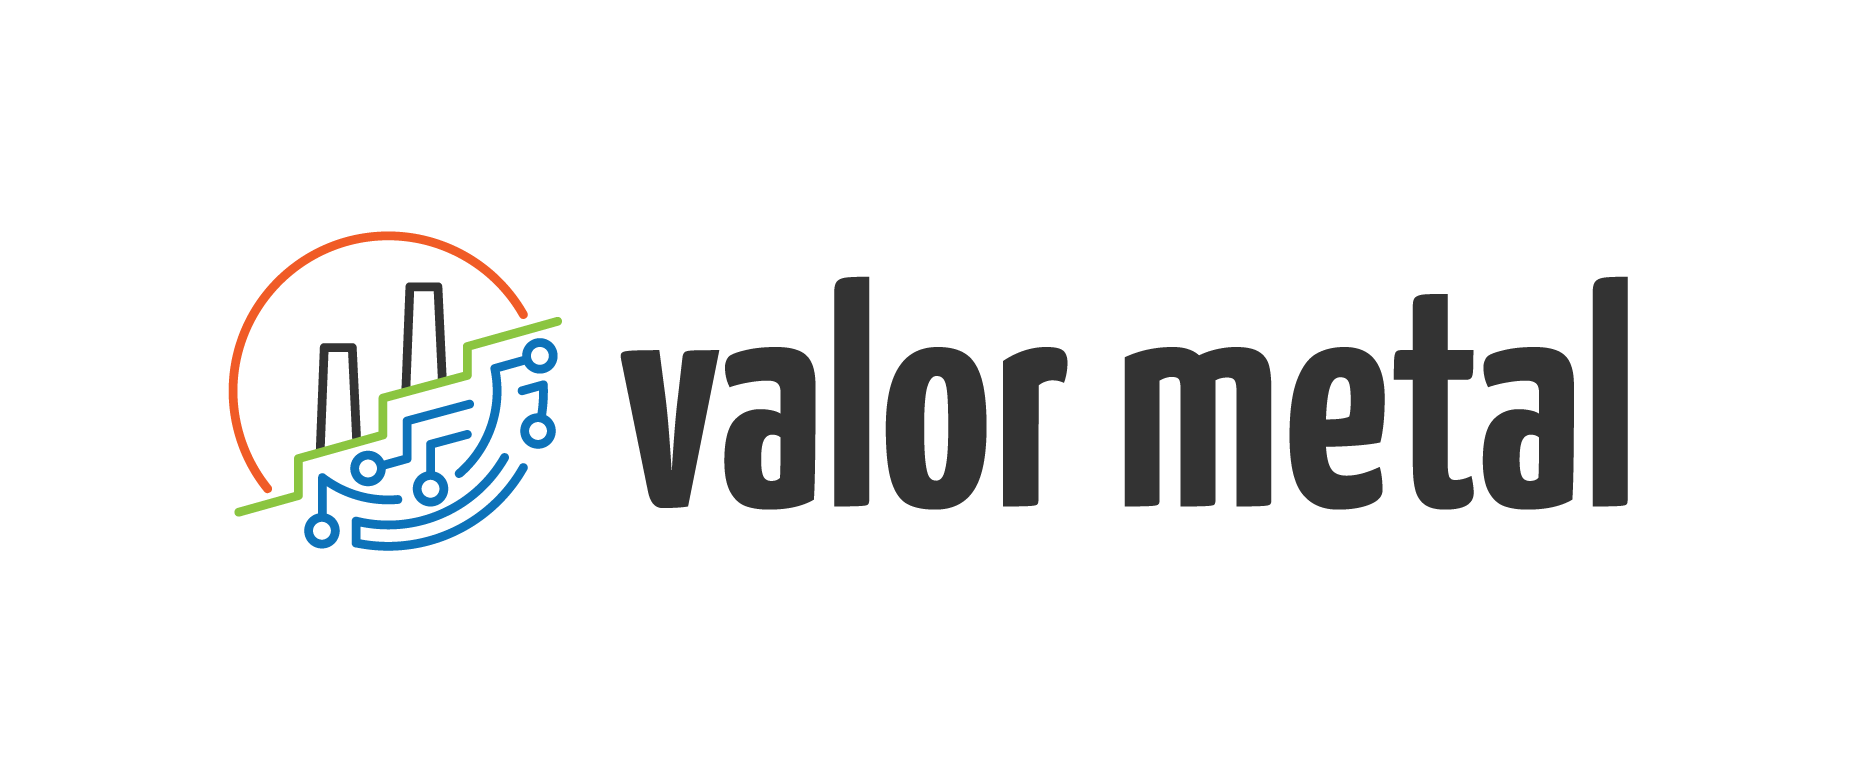 Valor metal logo horizontal